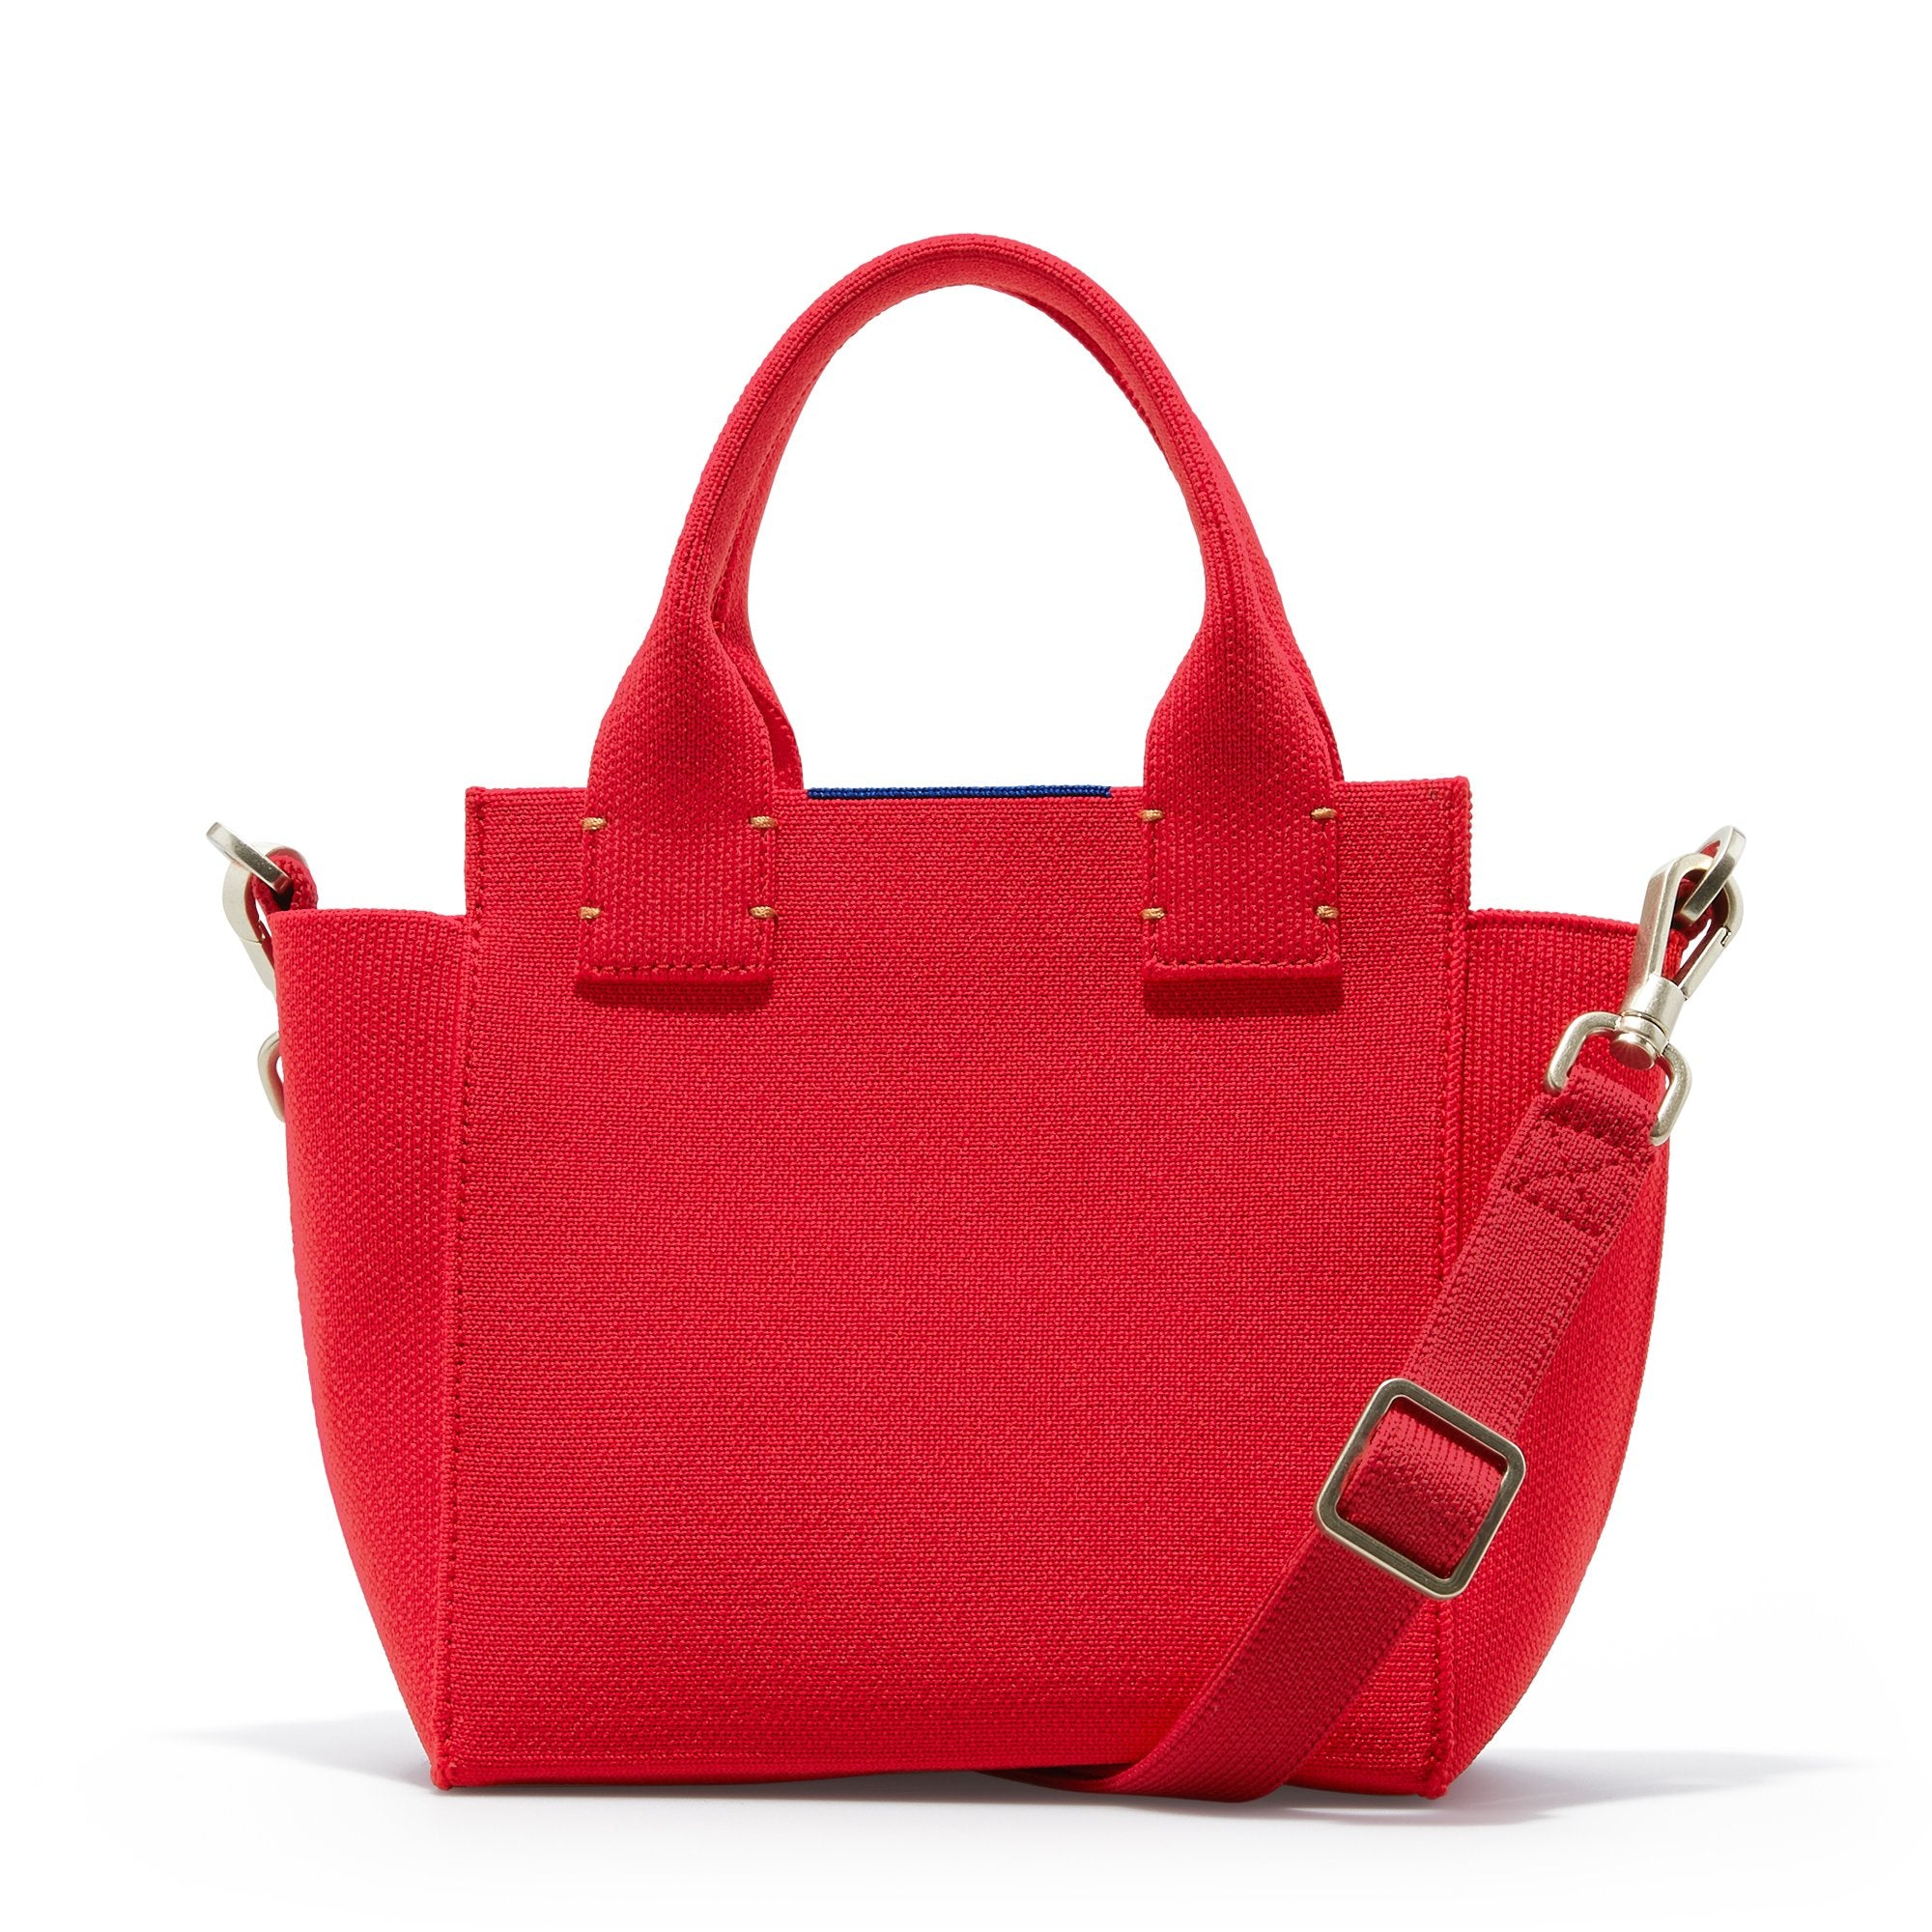 The Mini Handbag in Candy Apple shown from the front.